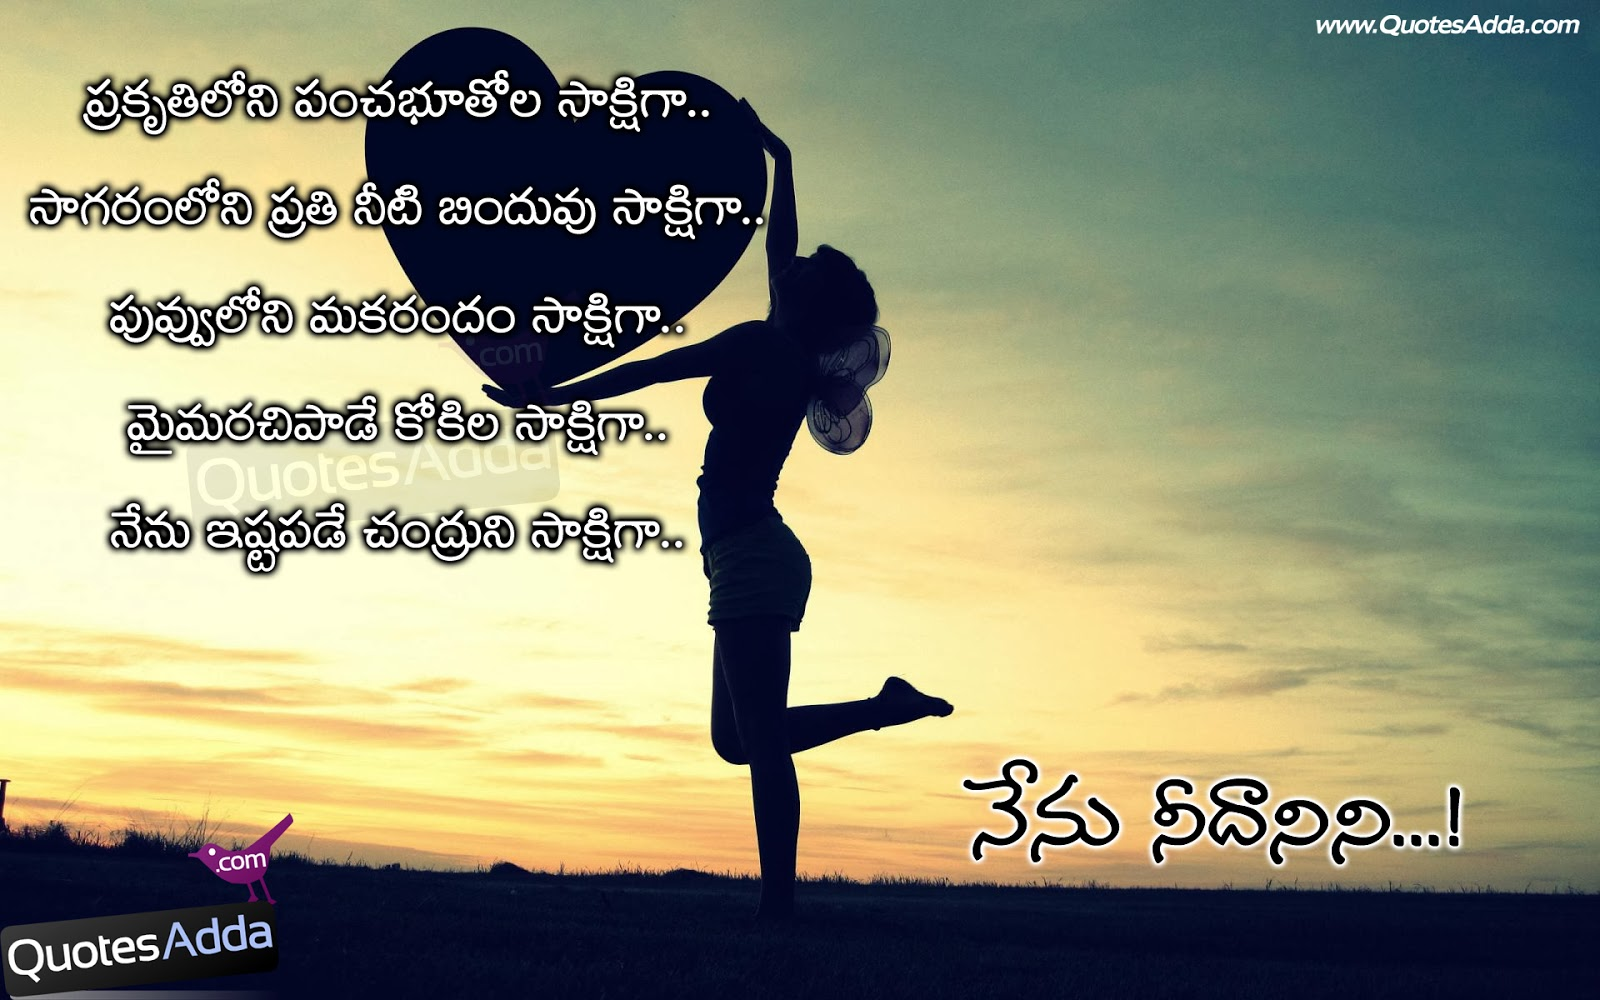 Romantic Love WhatSapp Status In Telugu